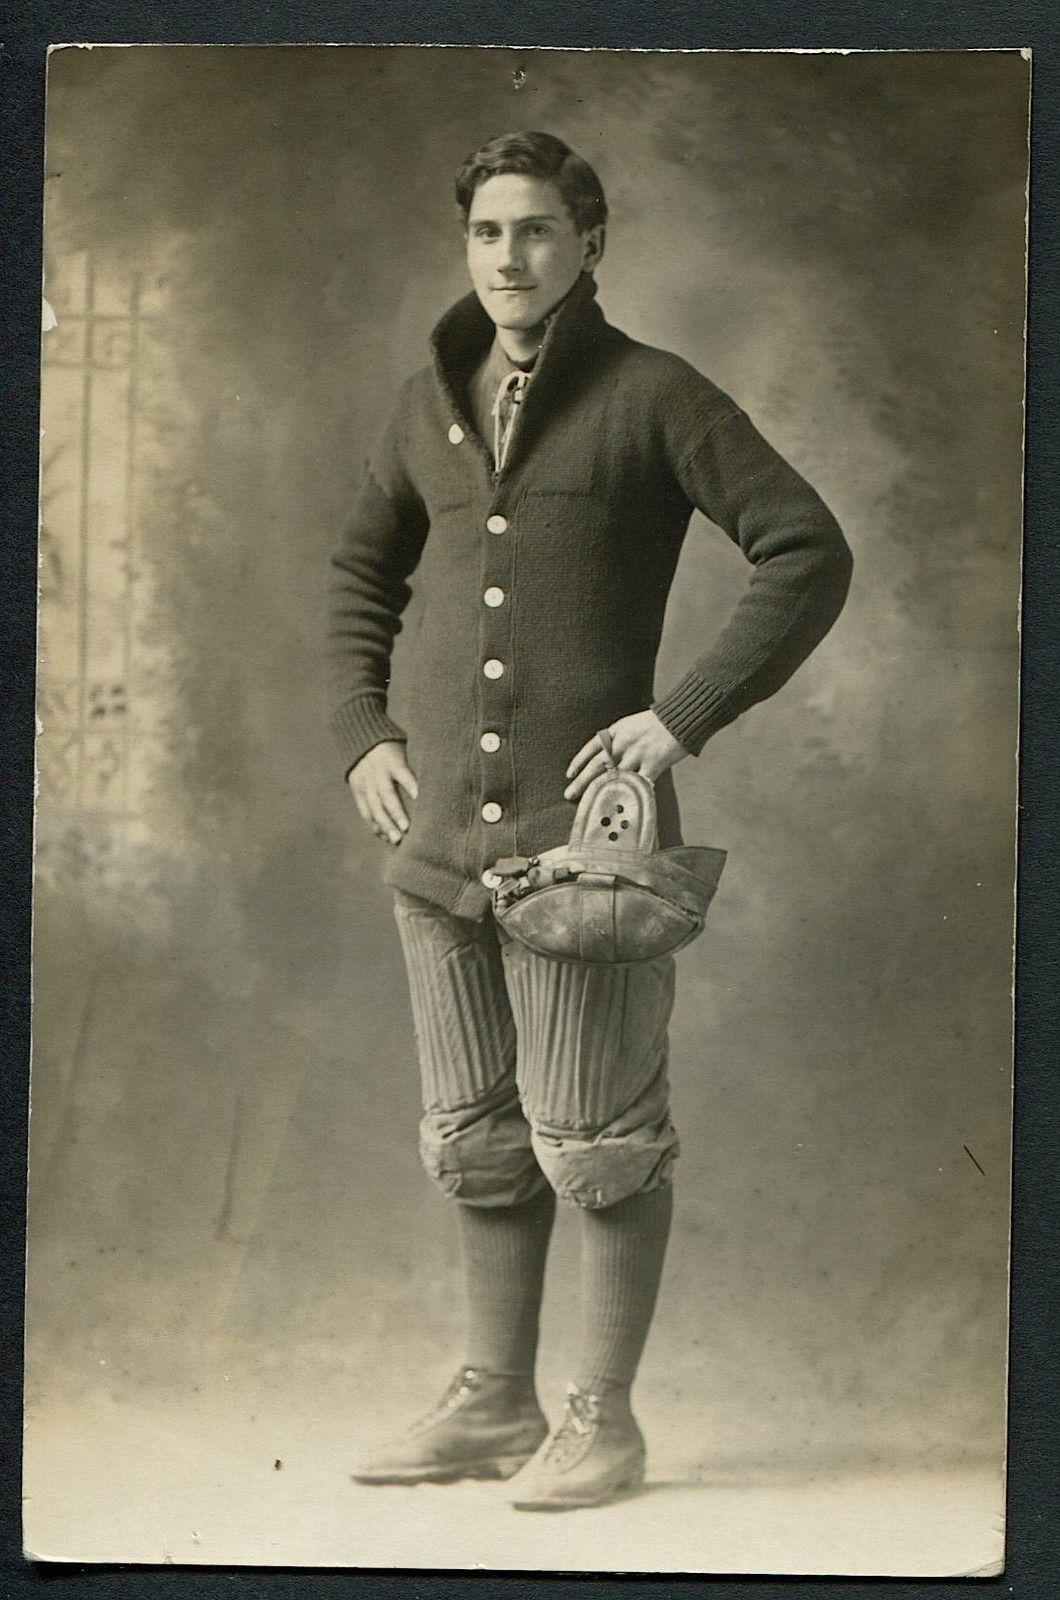 unknown football player unknown photographer 1910s